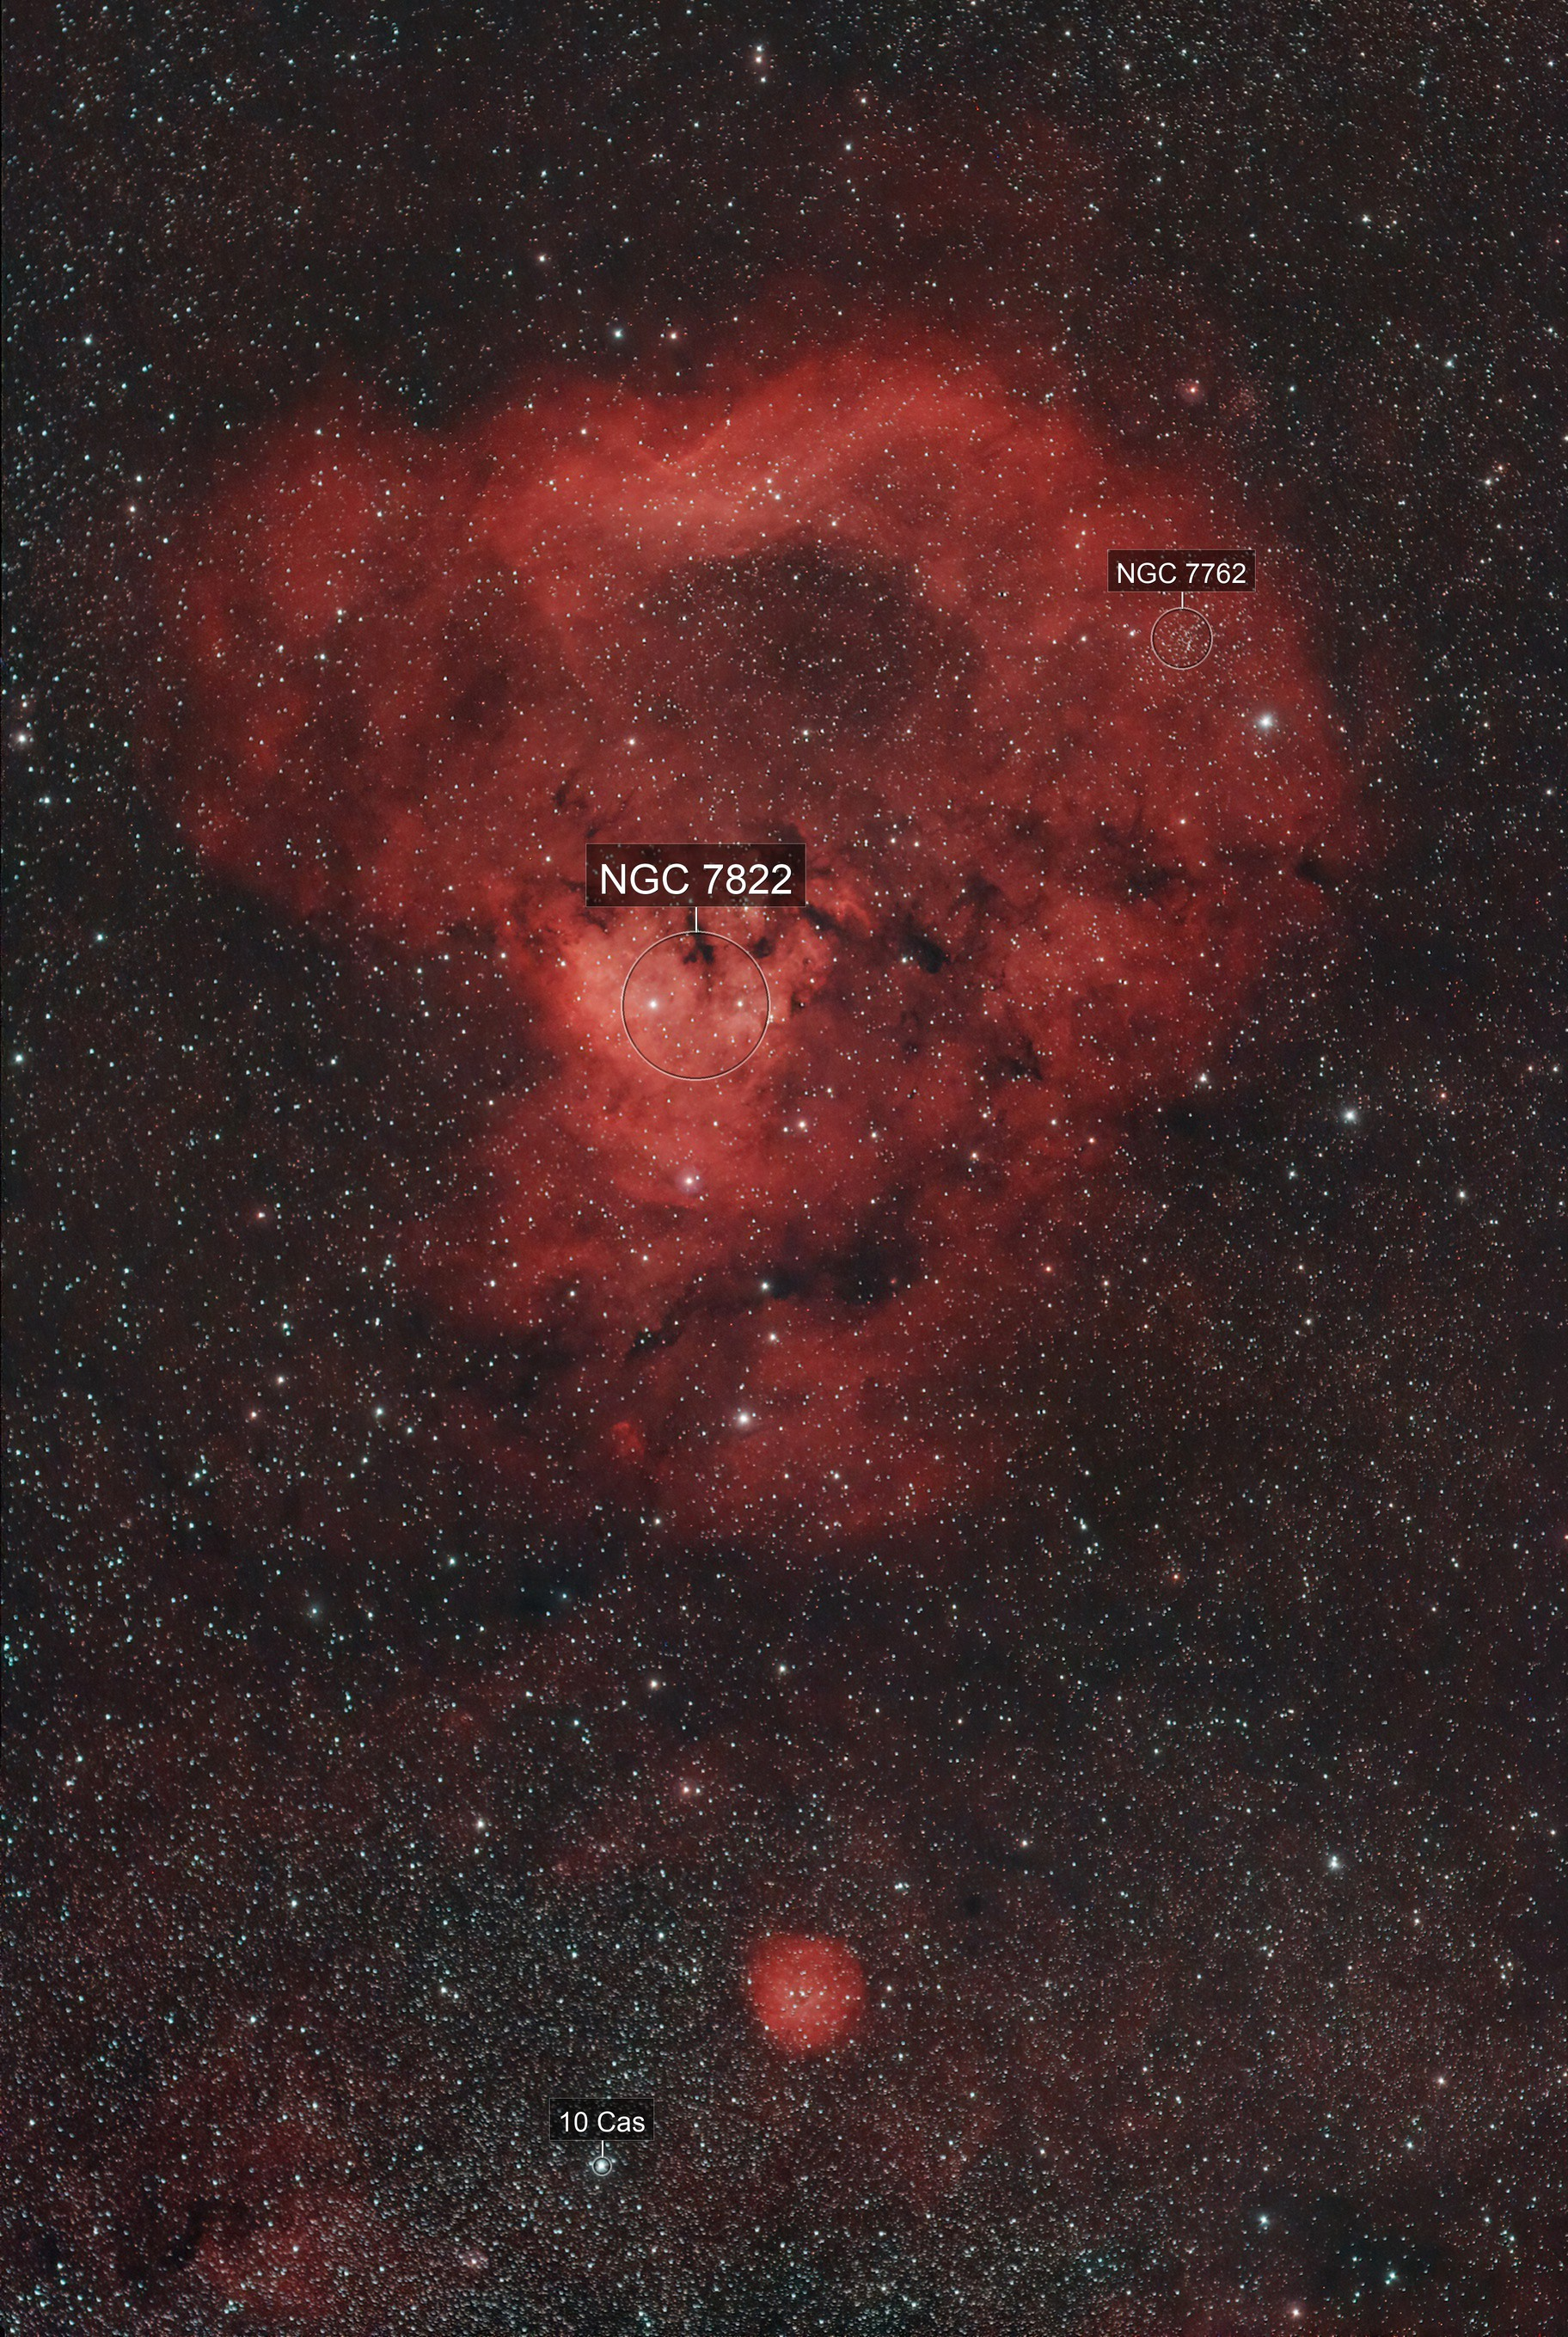 NGC 7822-CED 214 Red Skull Nebula or The Question Mark Nebula